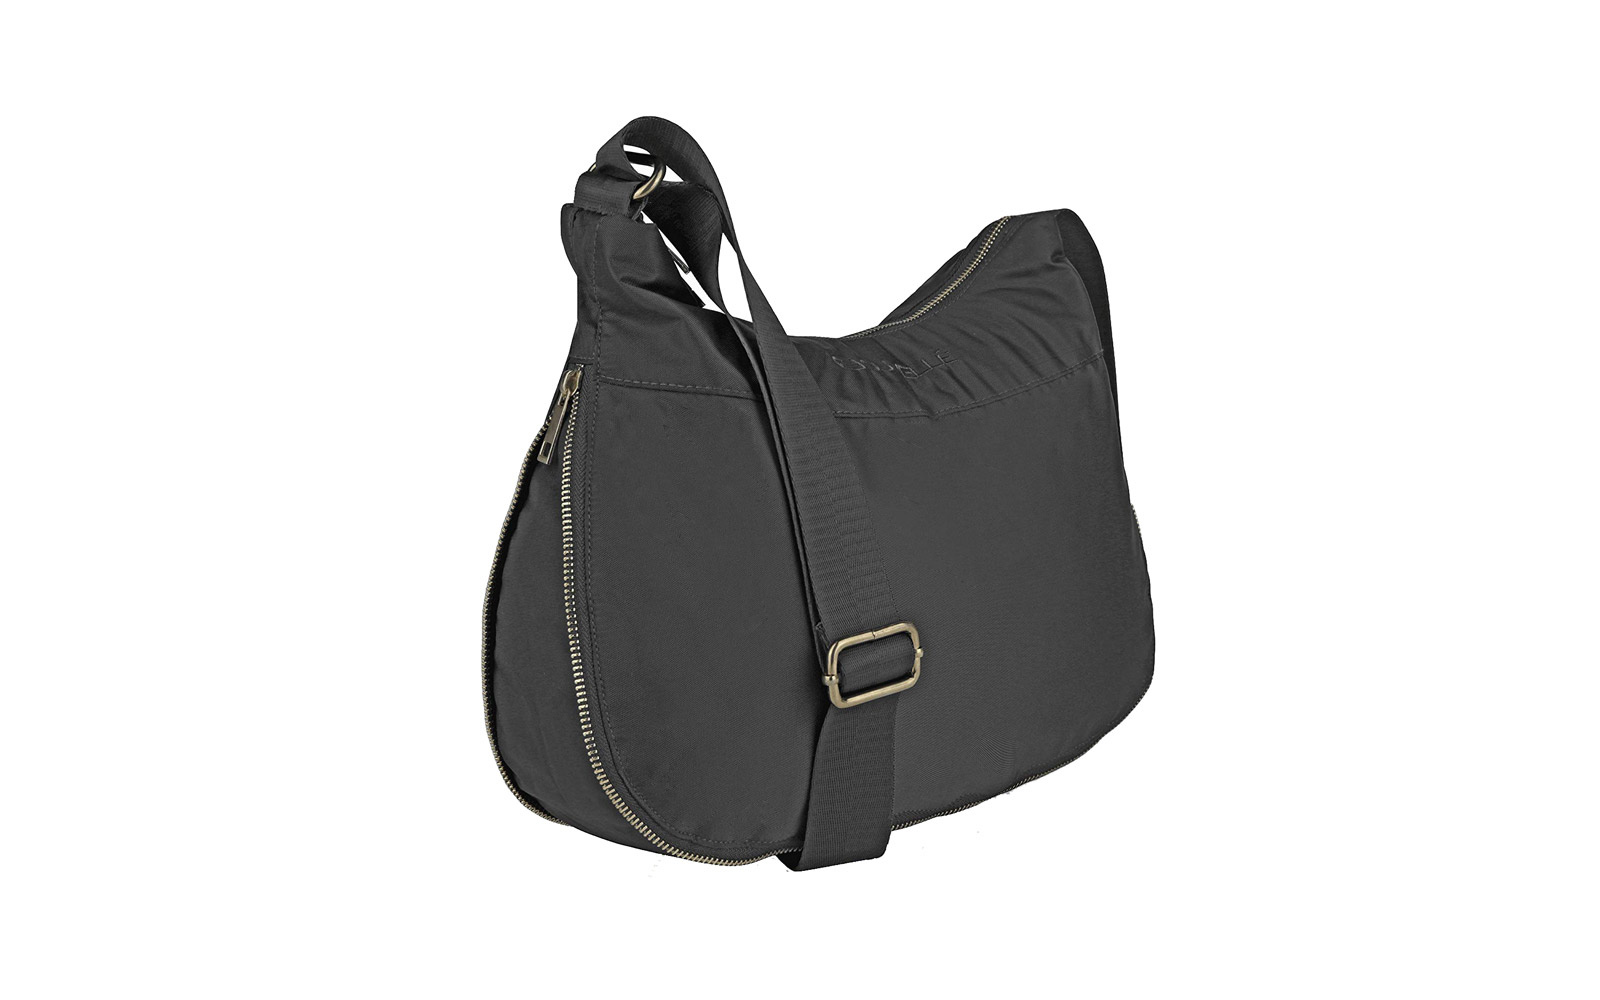 a0d4fe5c09 Suvelle RFID Expandable Travel Convertible Cross-body Bag. Anti-Theft Bags